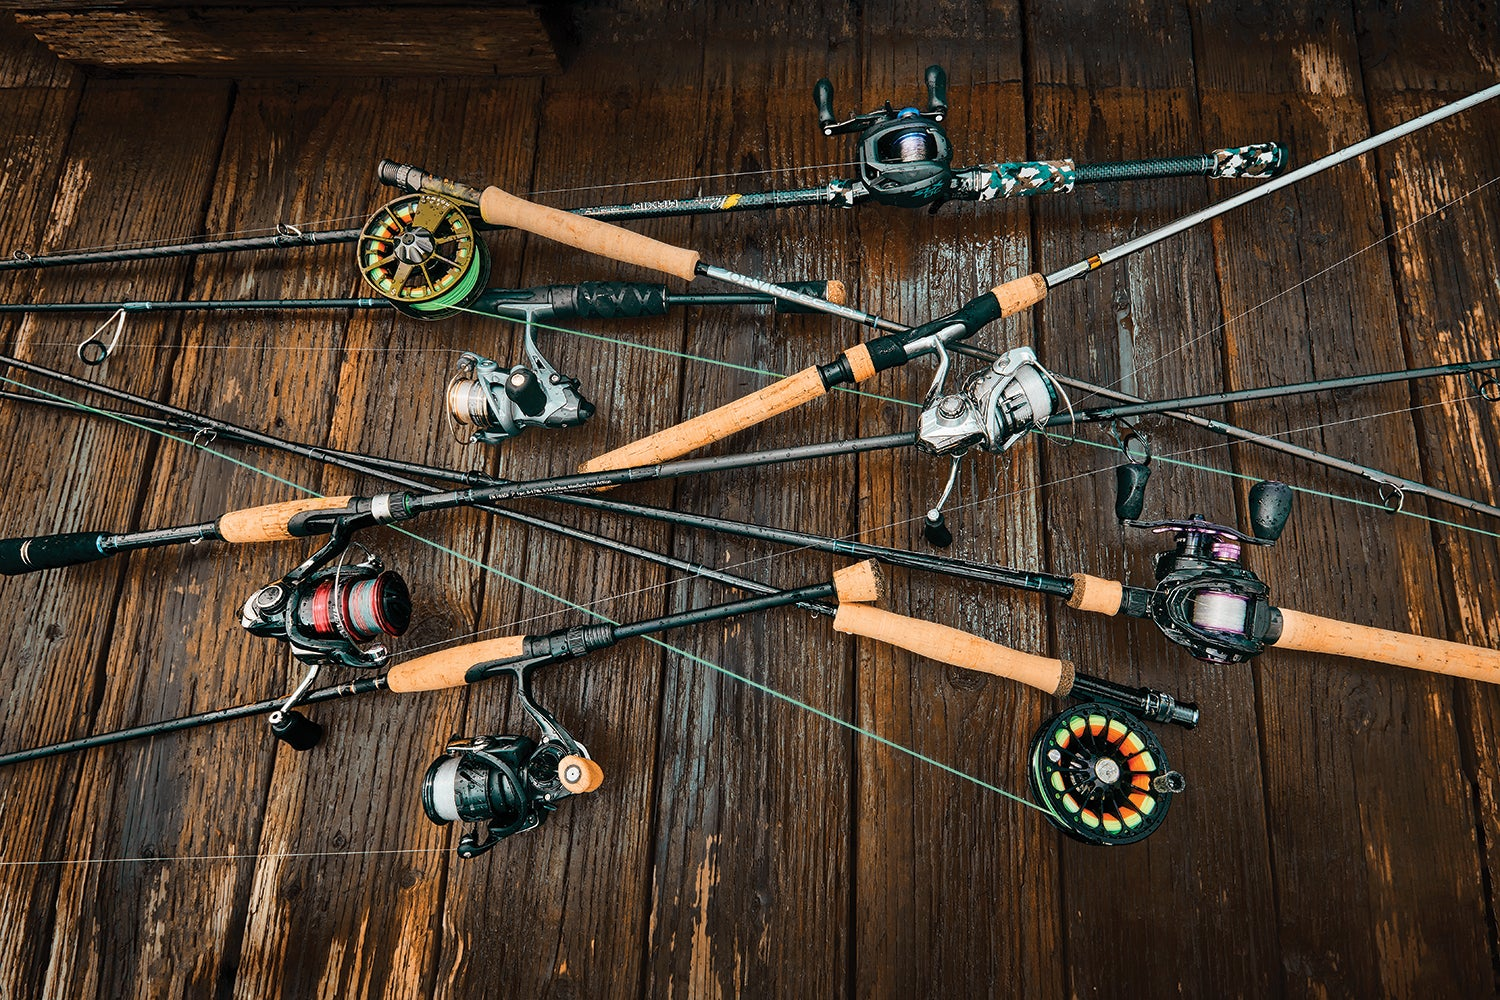 A sampling of fishing rods and reels.